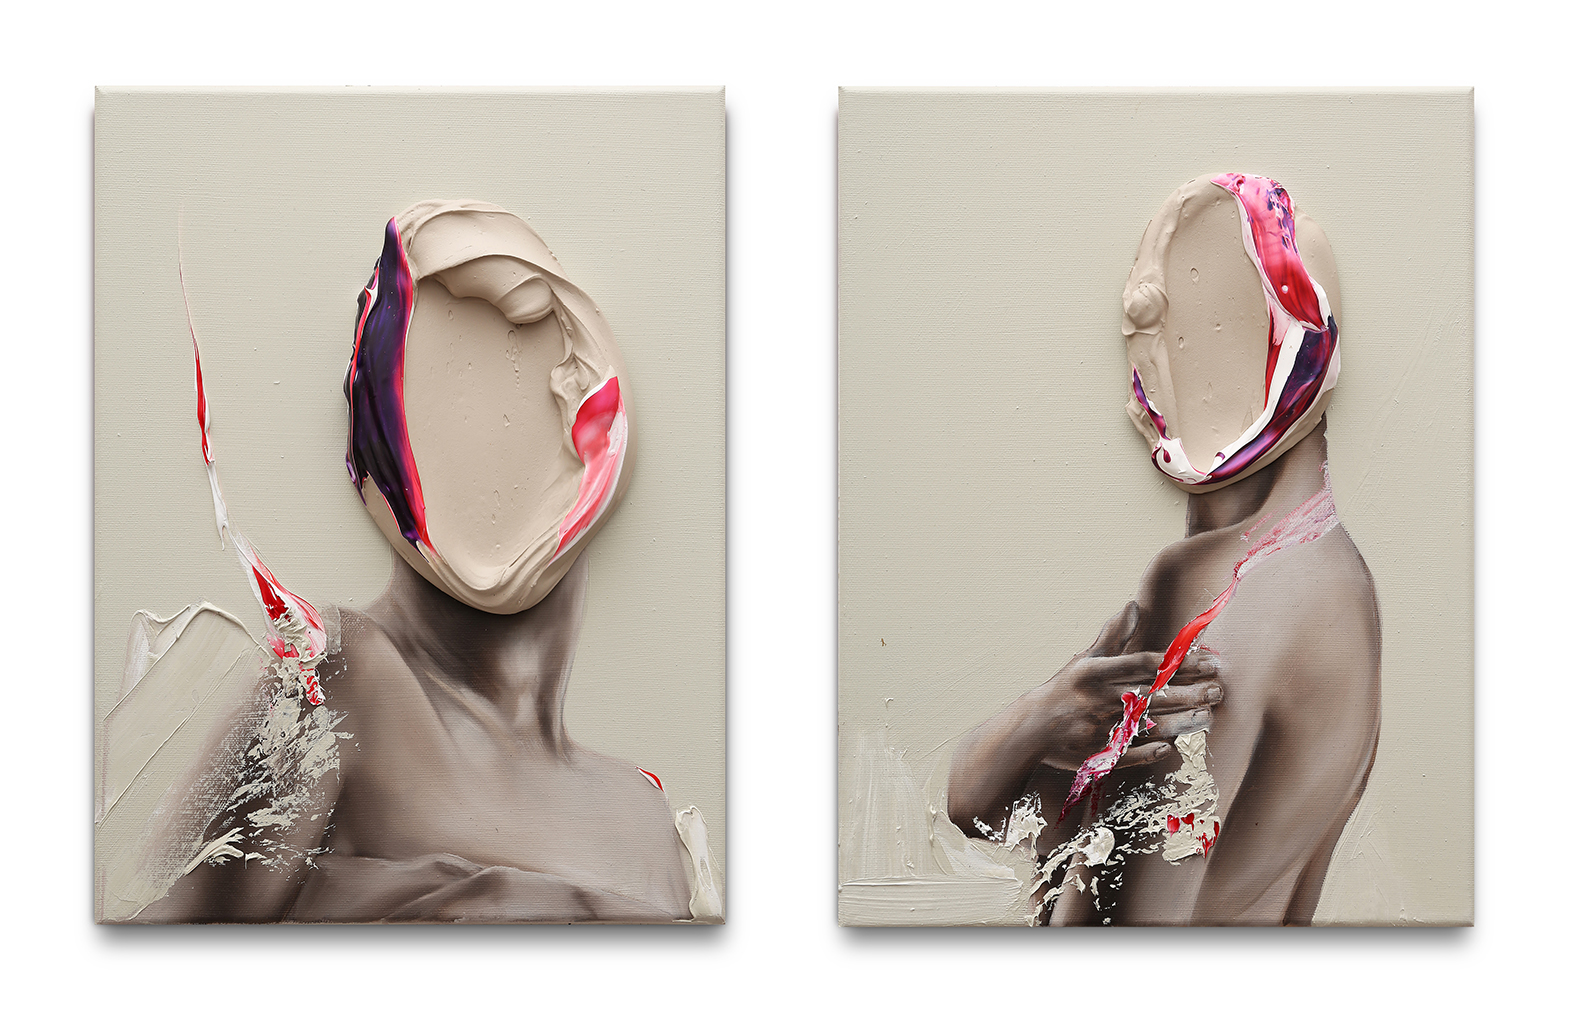 Diptych Migrating to the US - FABIO LA F